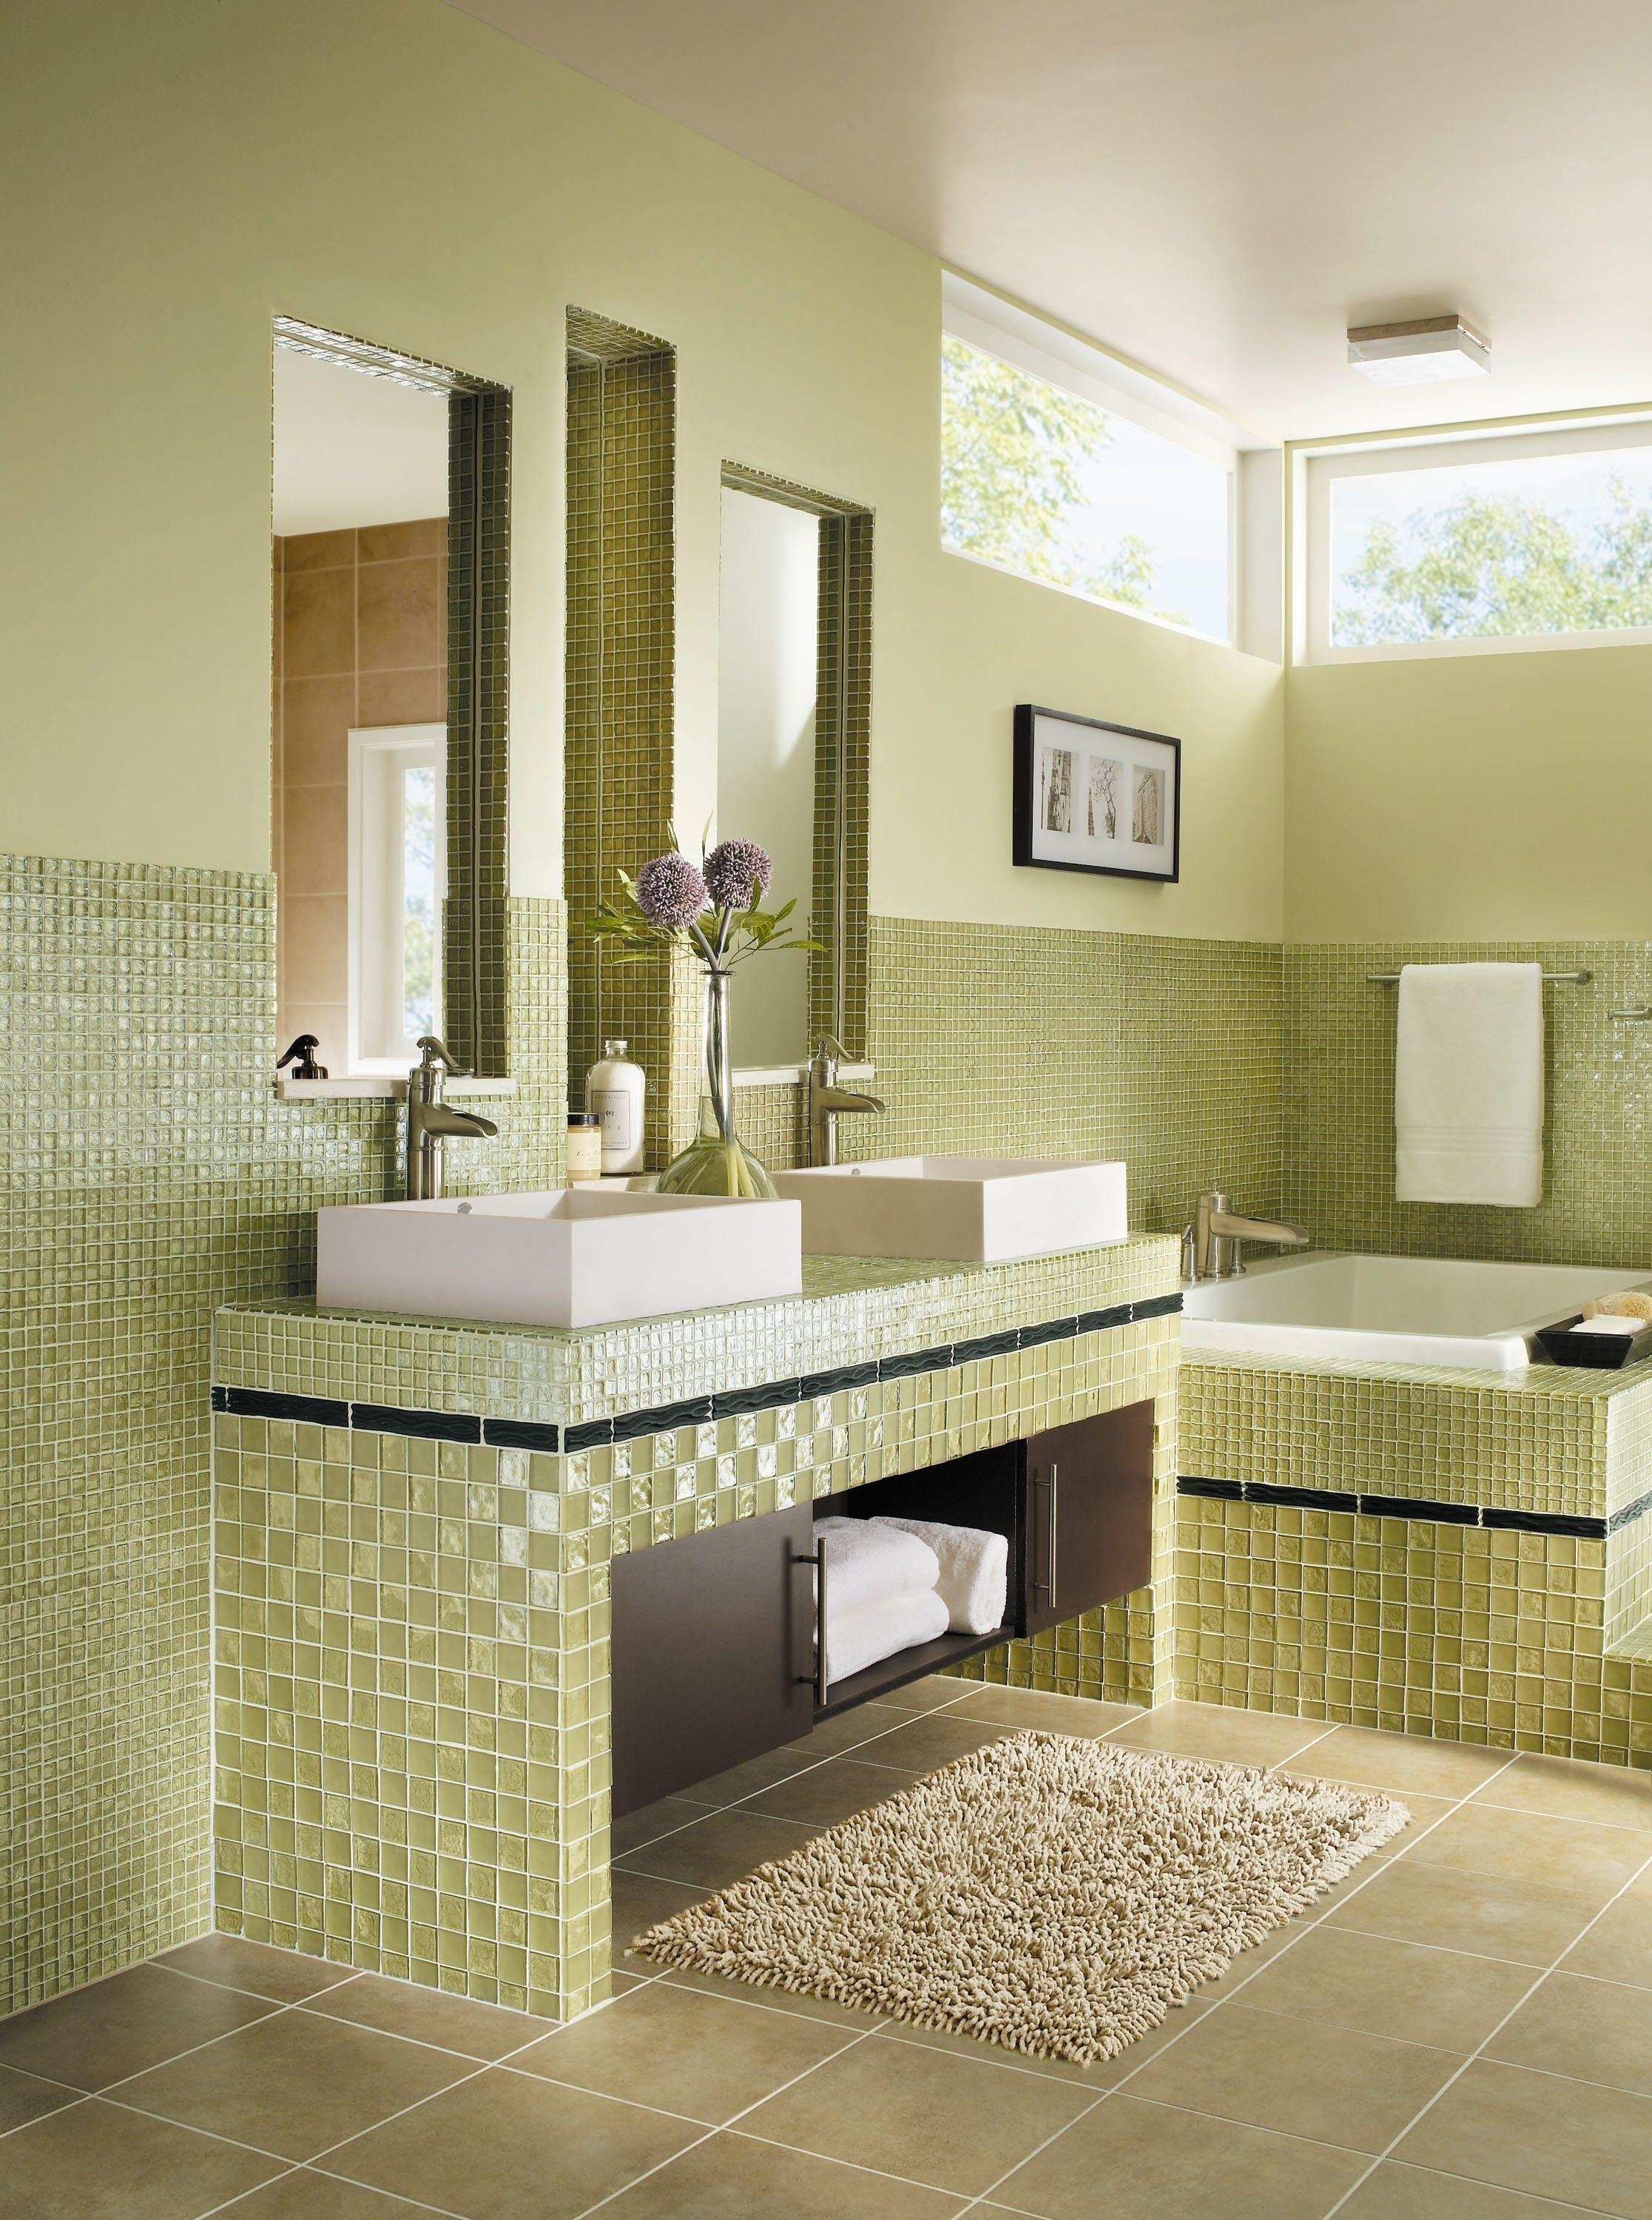 cost of tile for bathroom floor%0A Crossville has a large selection of tiles in both porcelain and glass that  uses recycled products